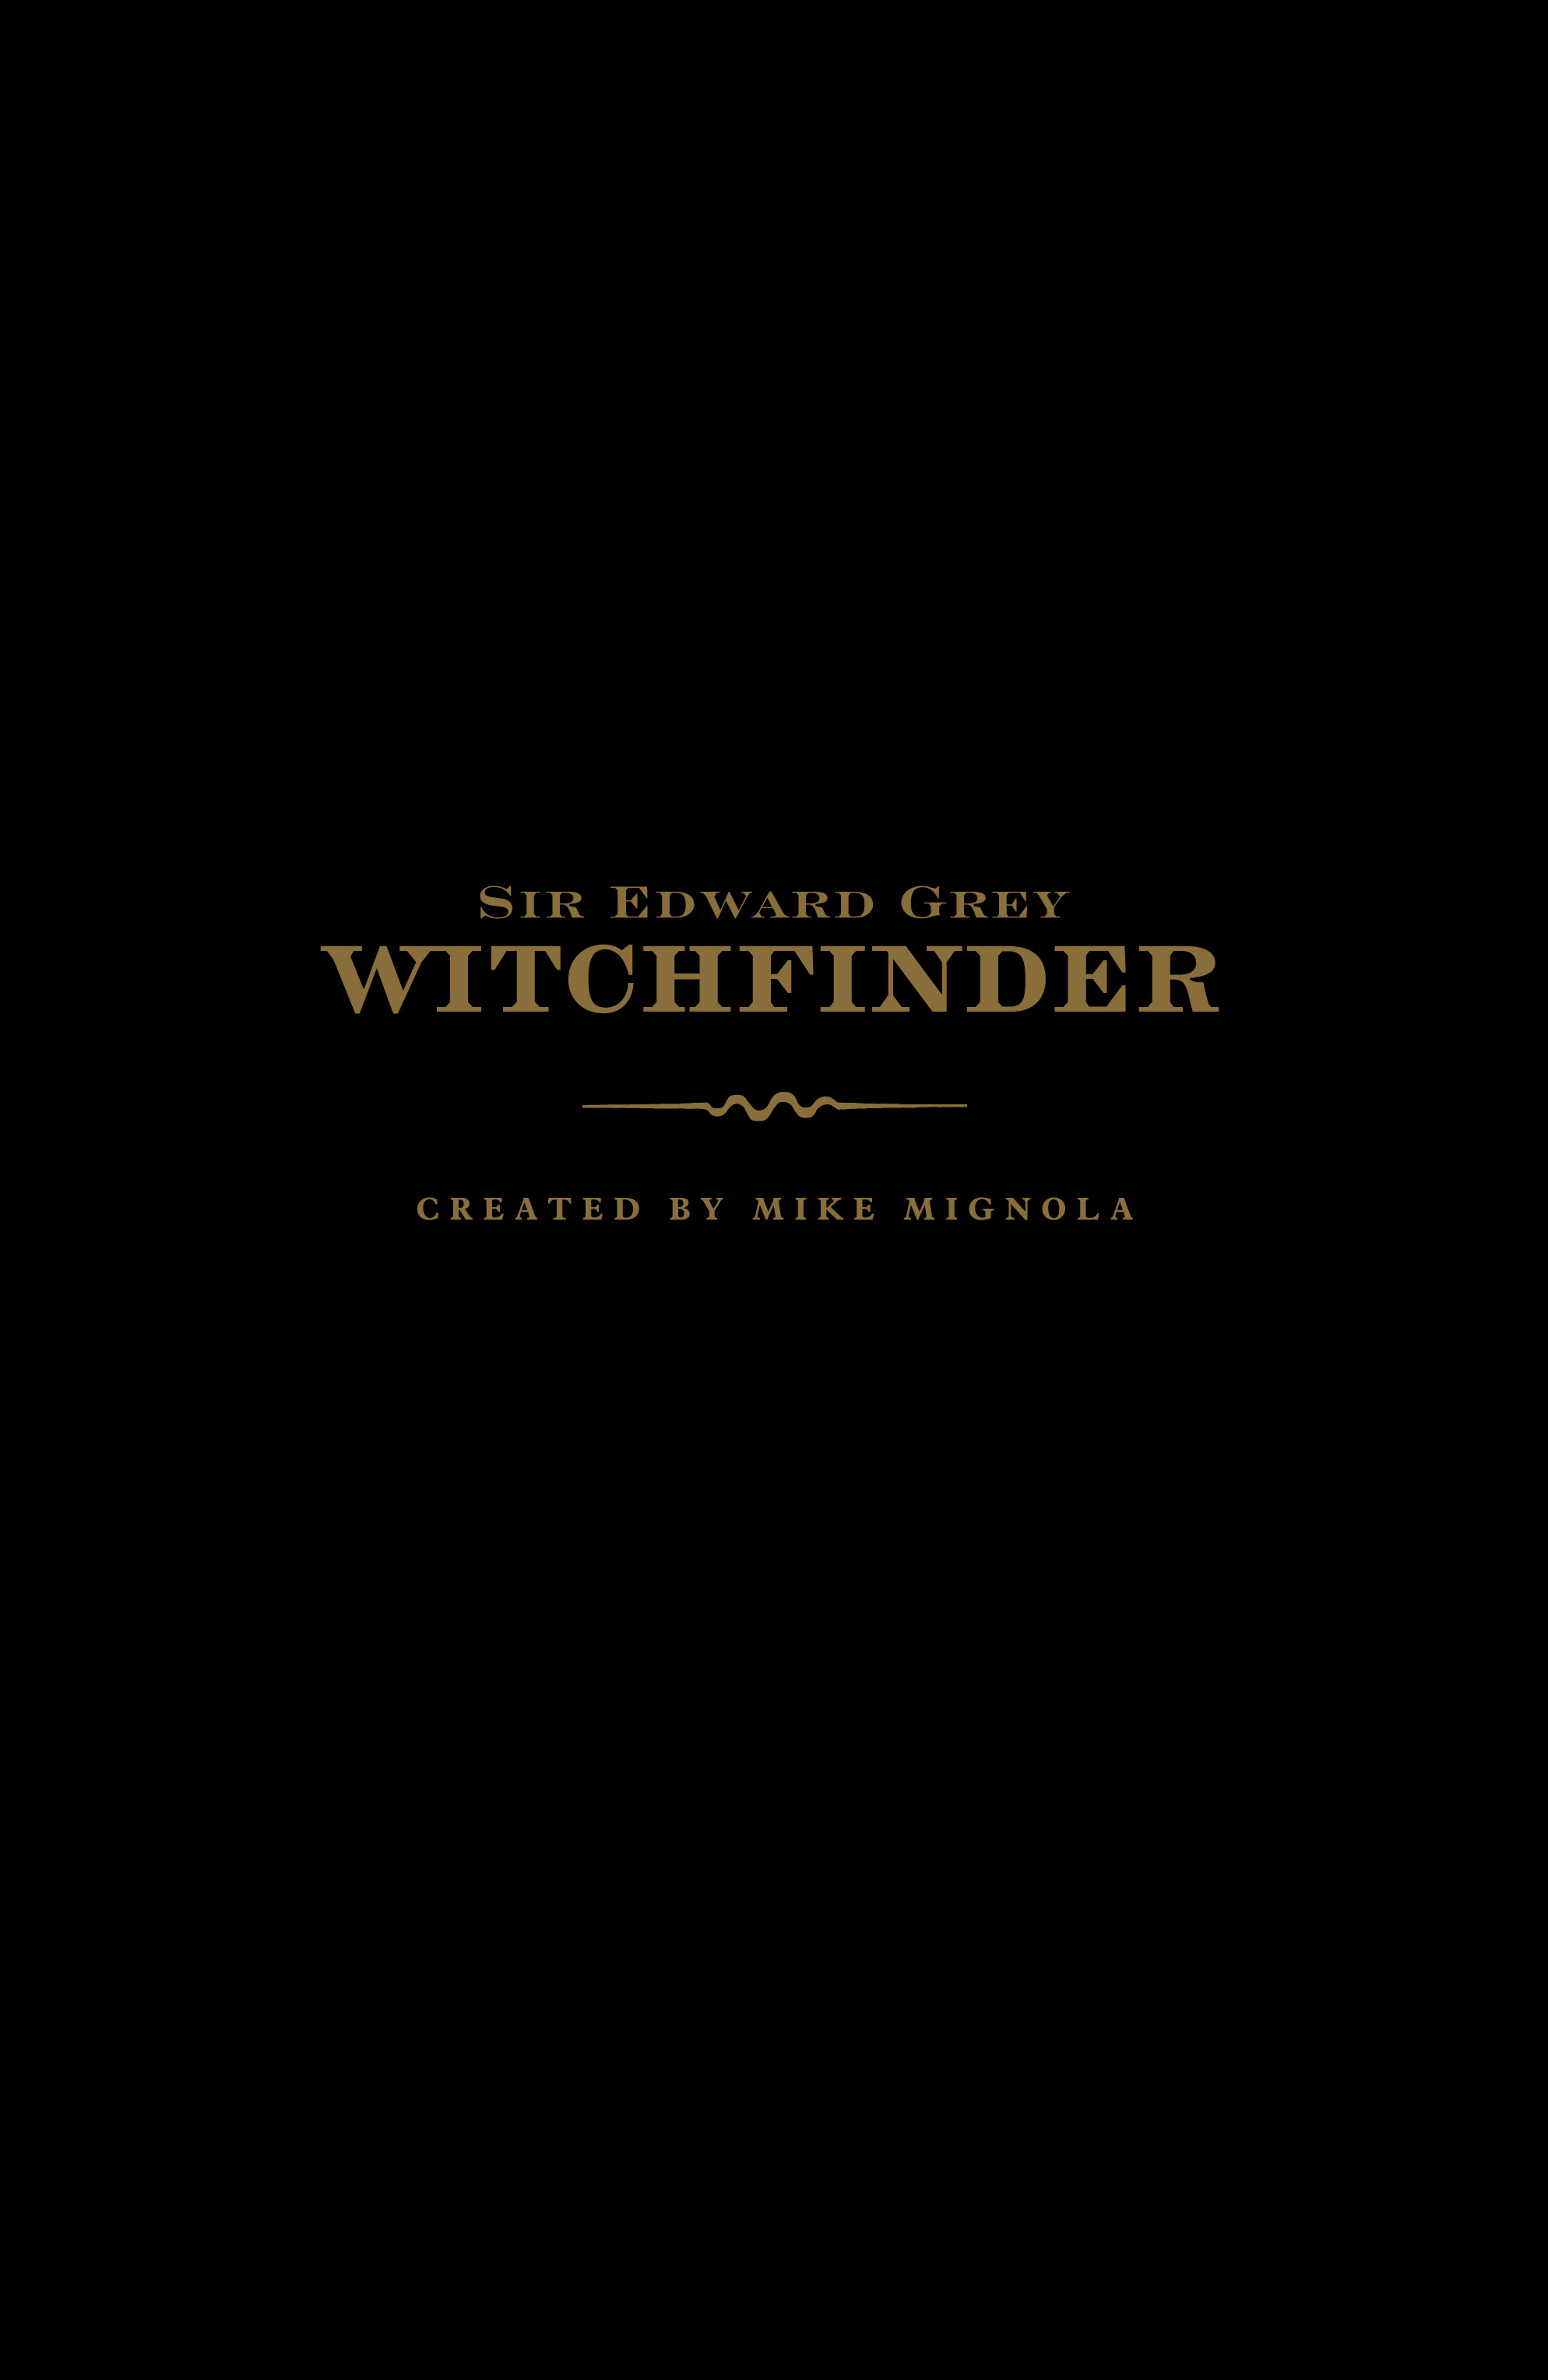 Read online Sir Edward Grey, Witchfinder: In the Service of Angels comic -  Issue # TPB - 2